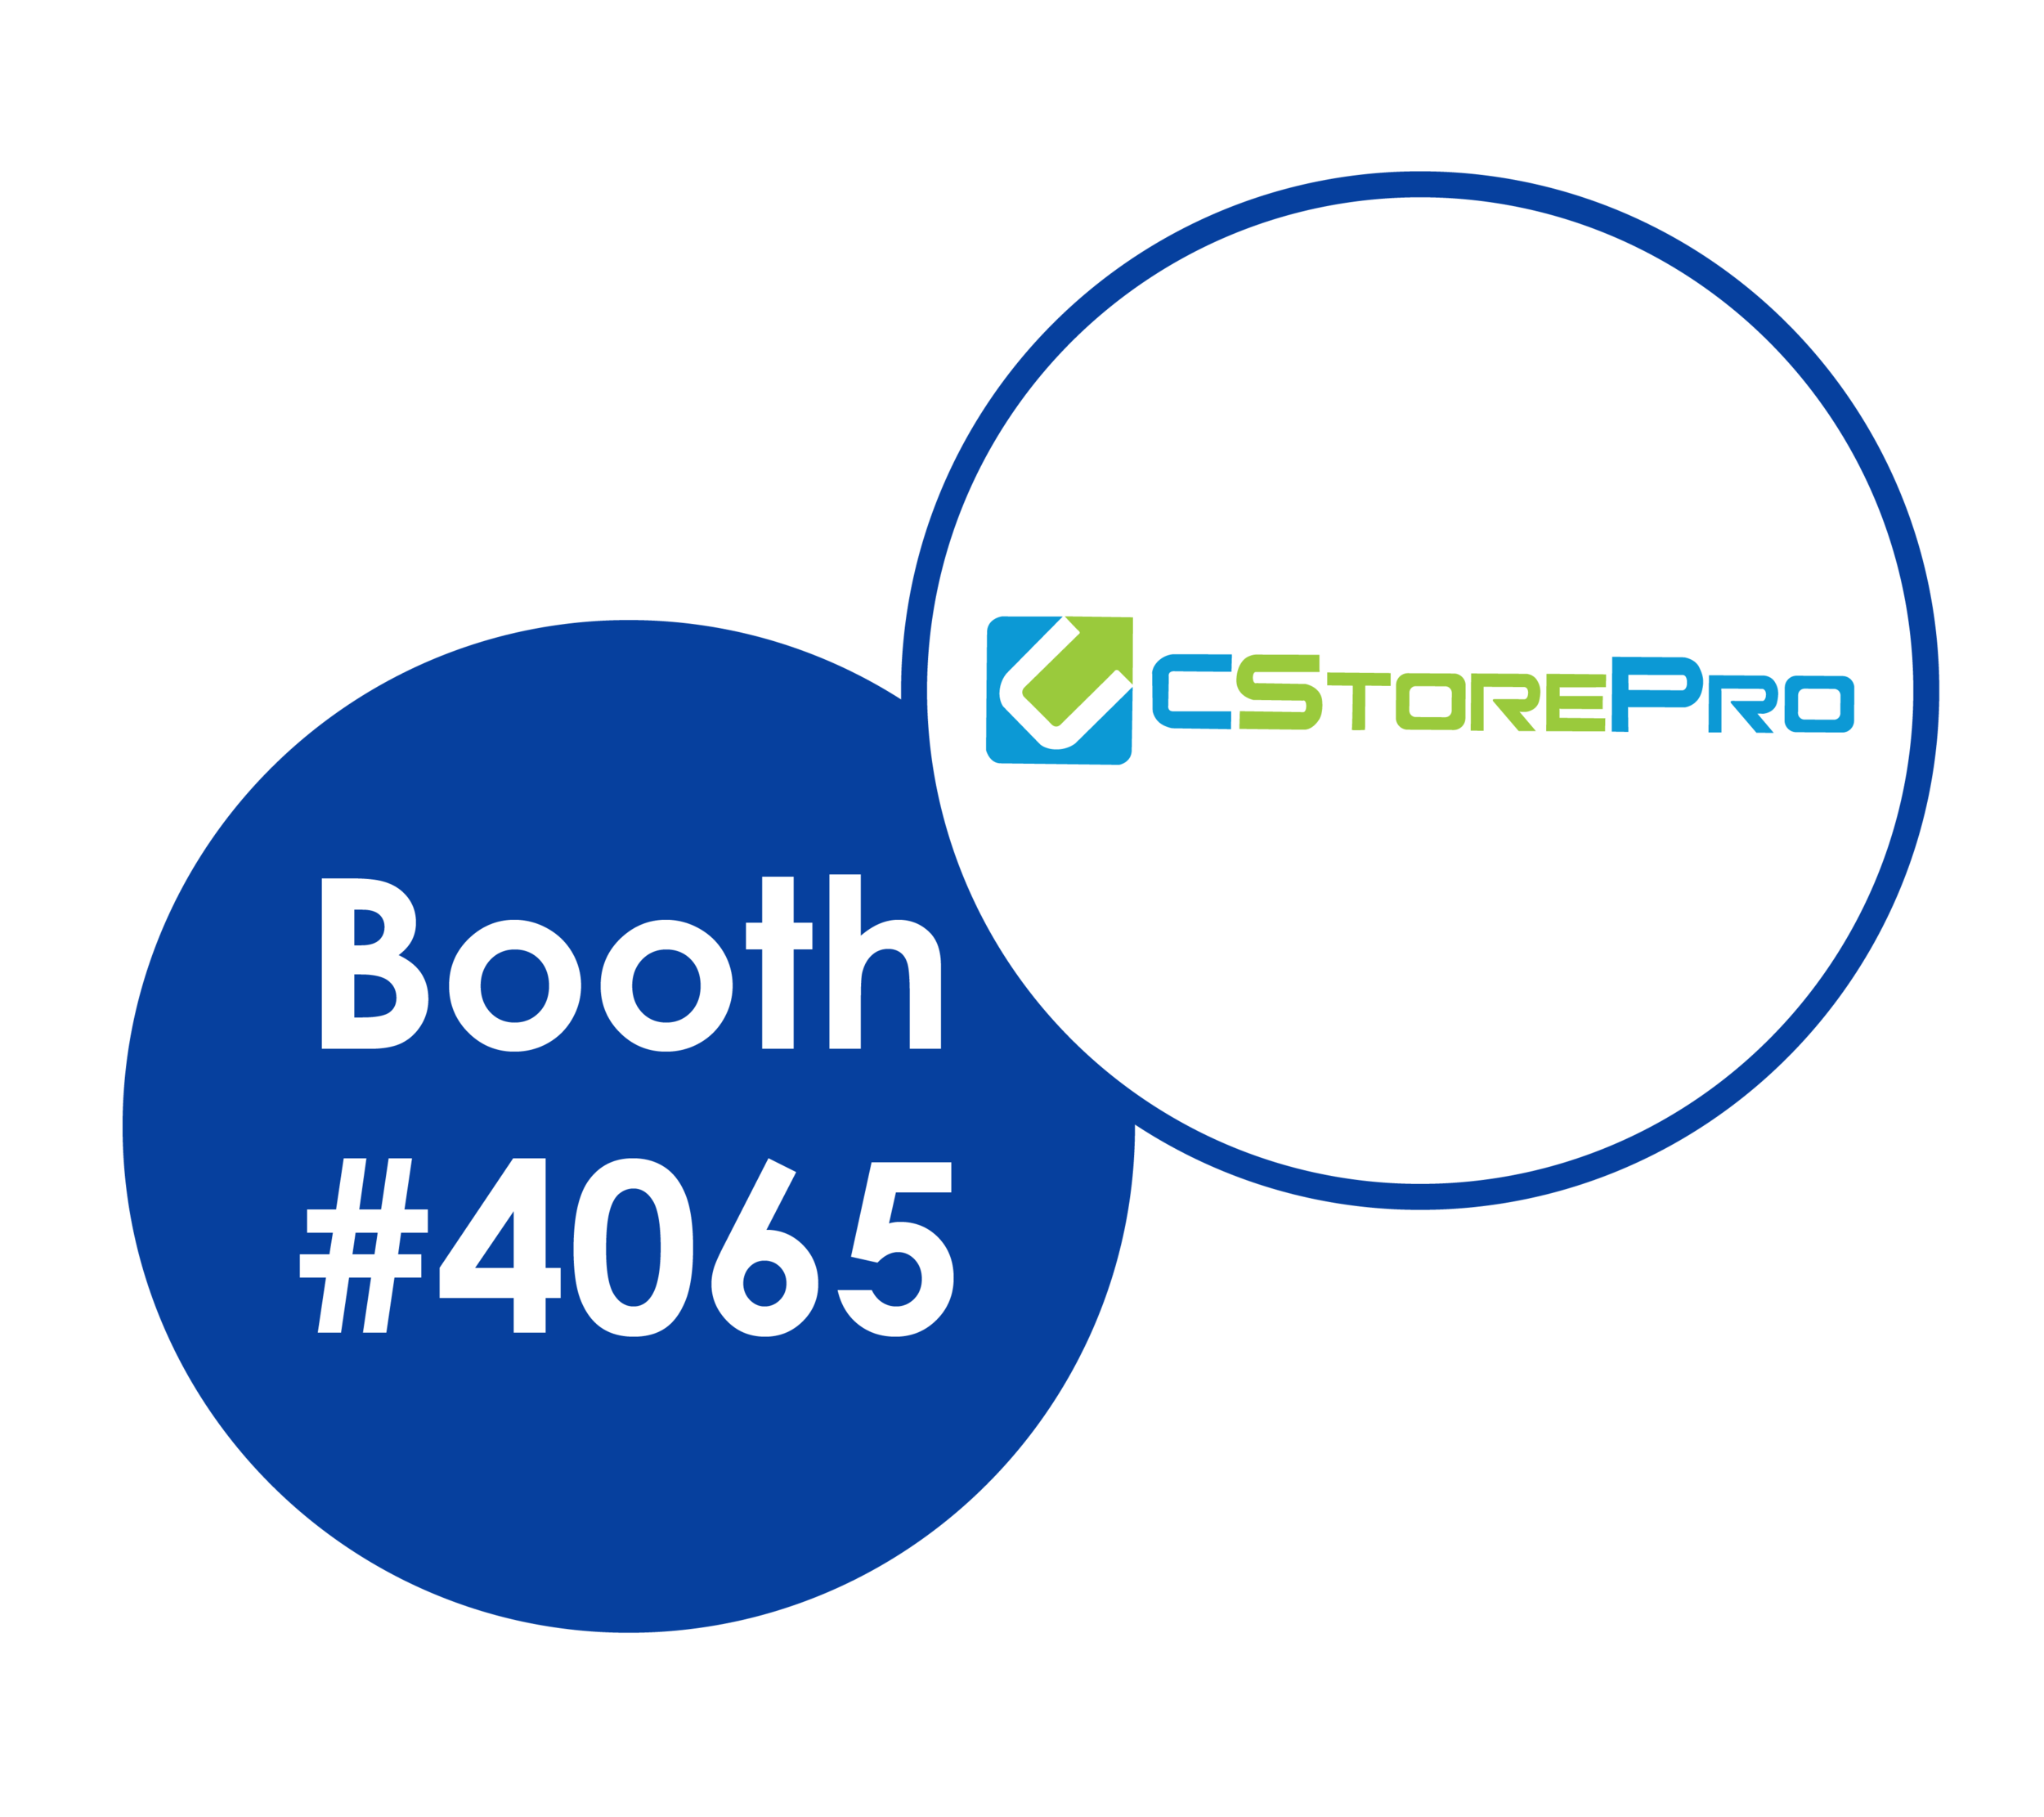 Acquisition-Booth Numbers-V1-JH-2019-7-25_CStorePro.png